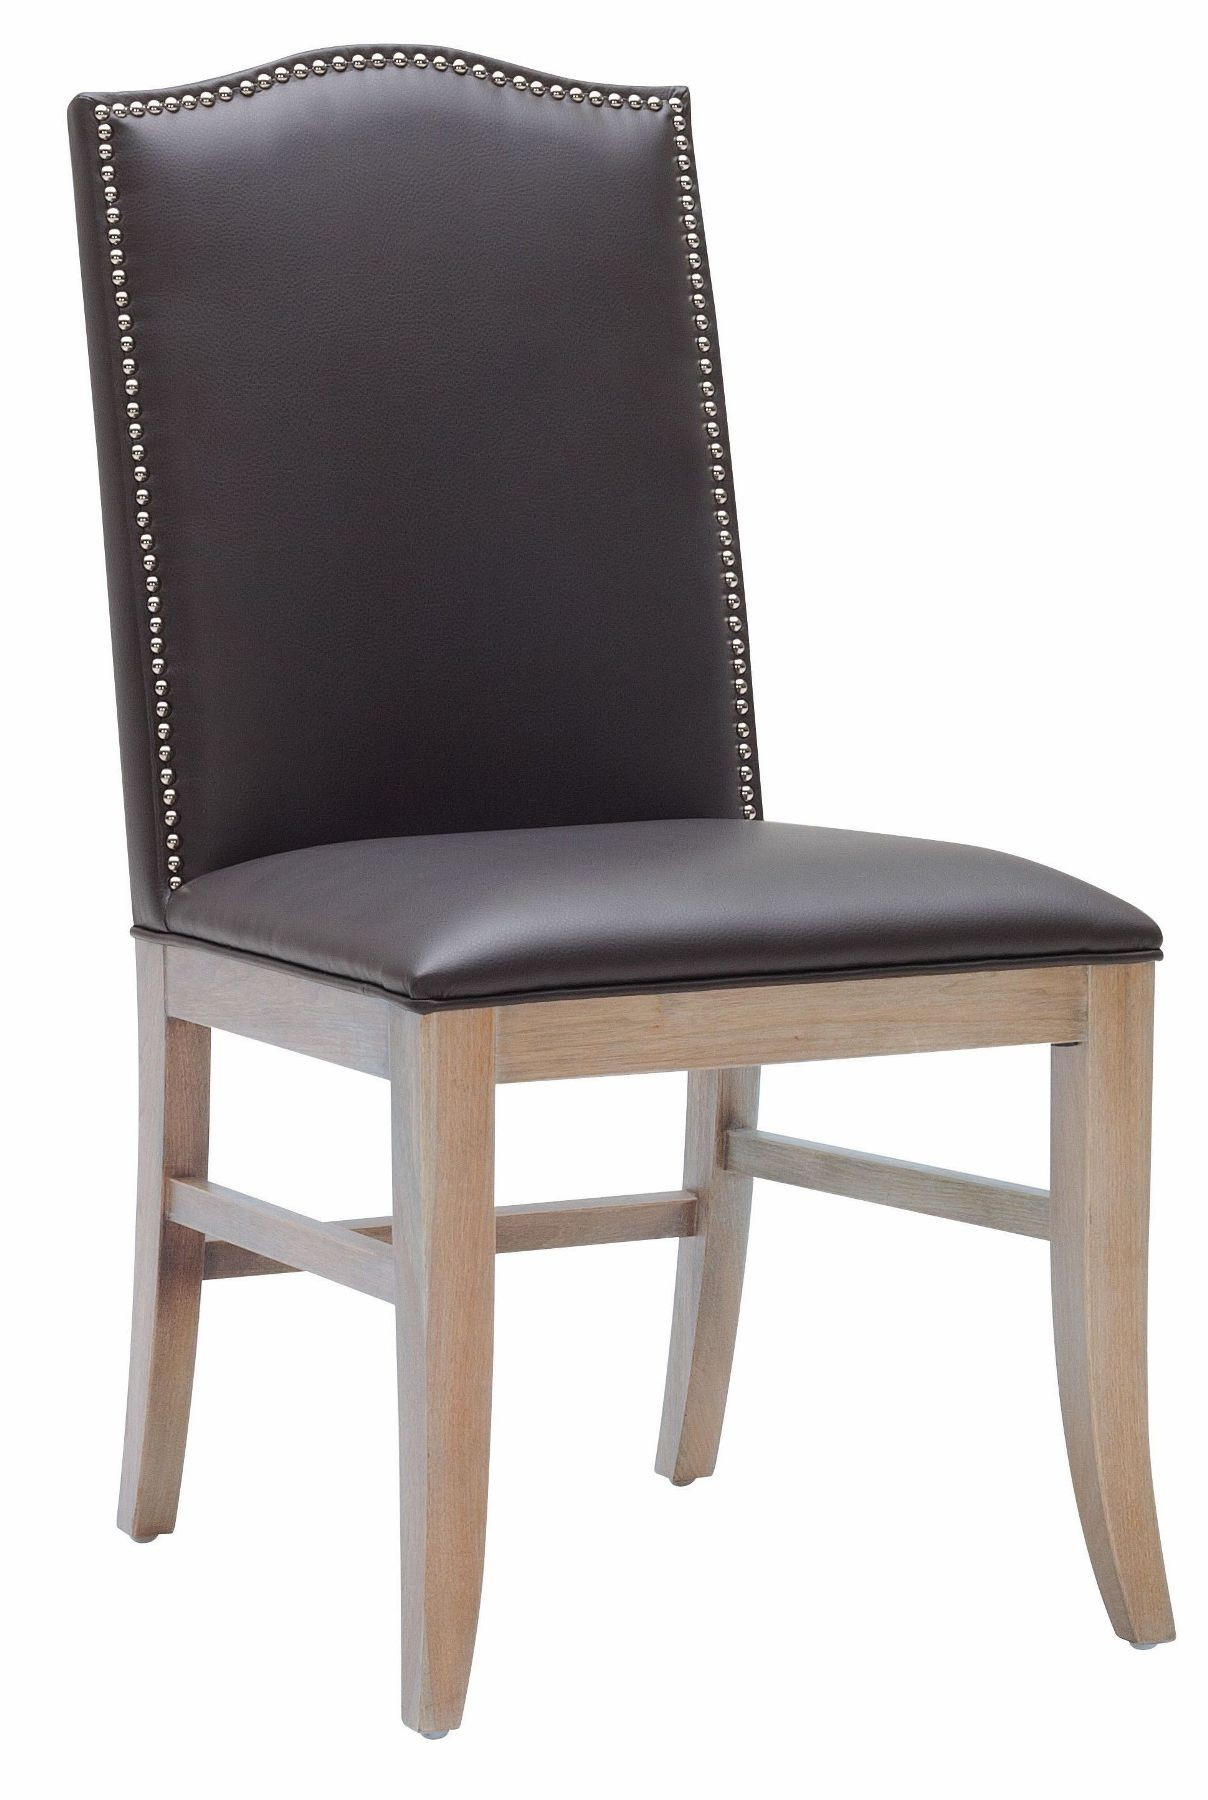 Gray Dining Chair Maison Gray Leather Dining Chair Set Of 2 From Sunpan